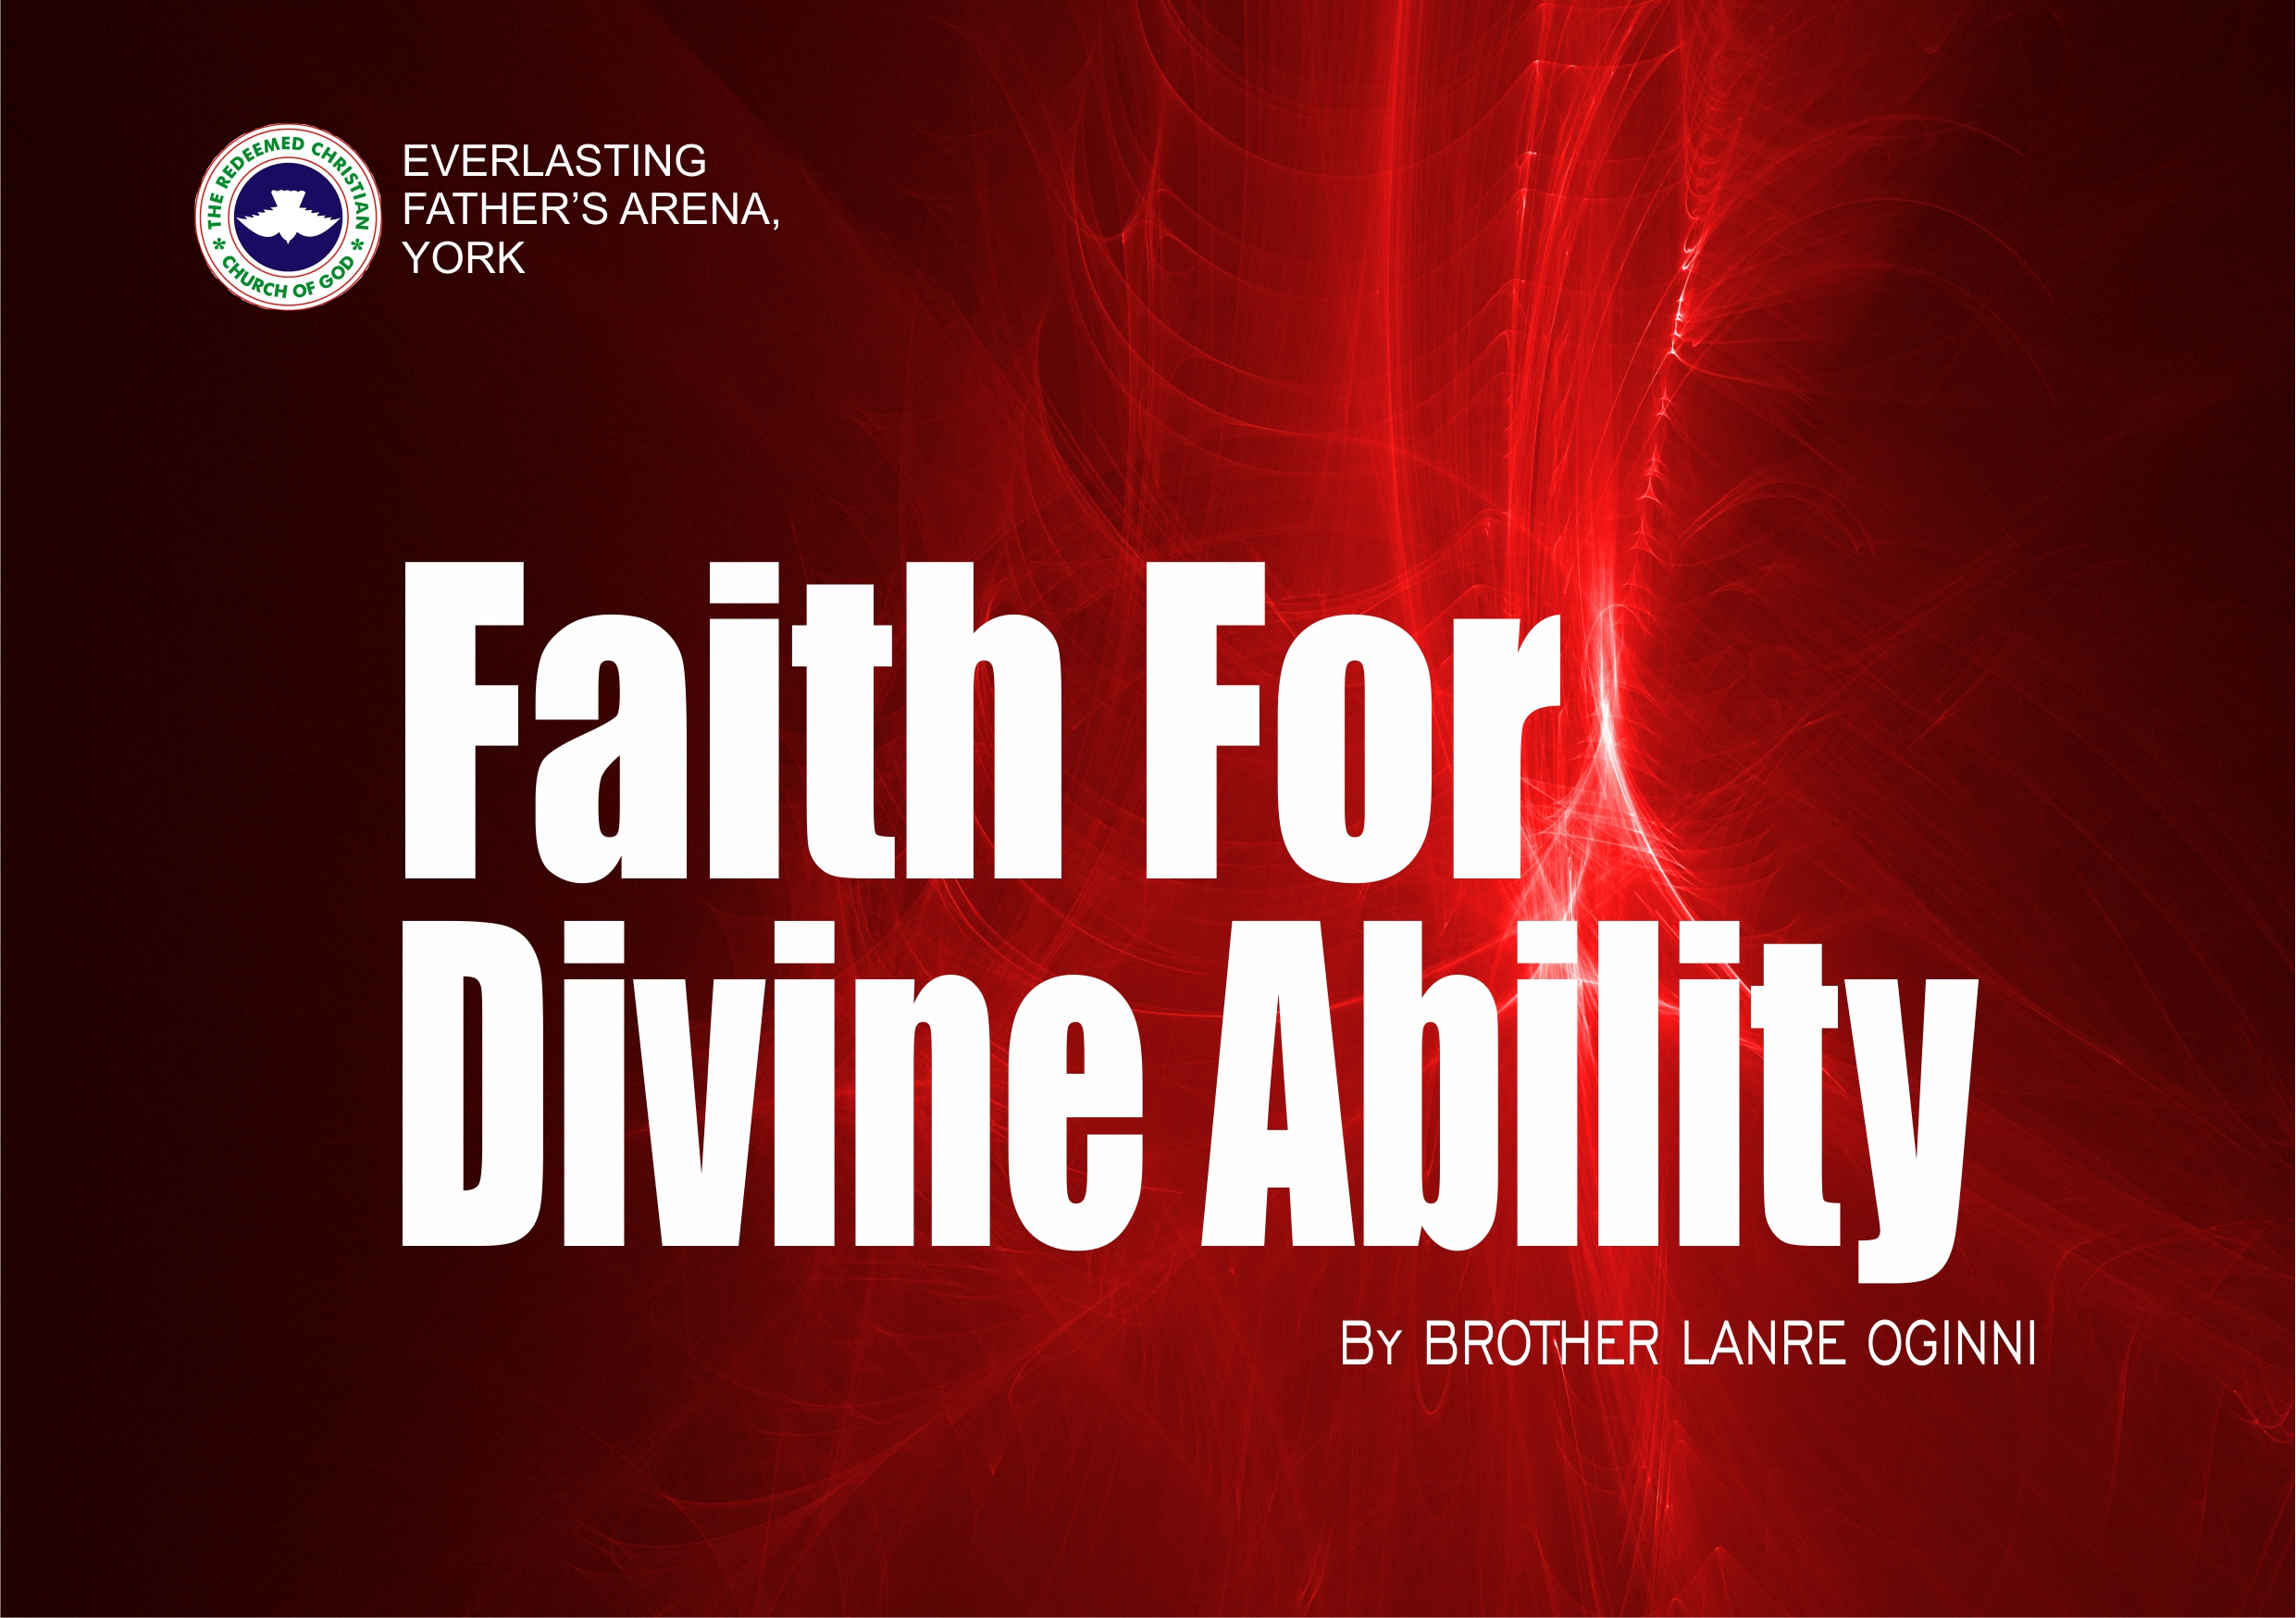 Faith For Divine Ability, by Brother Lanre Oginni